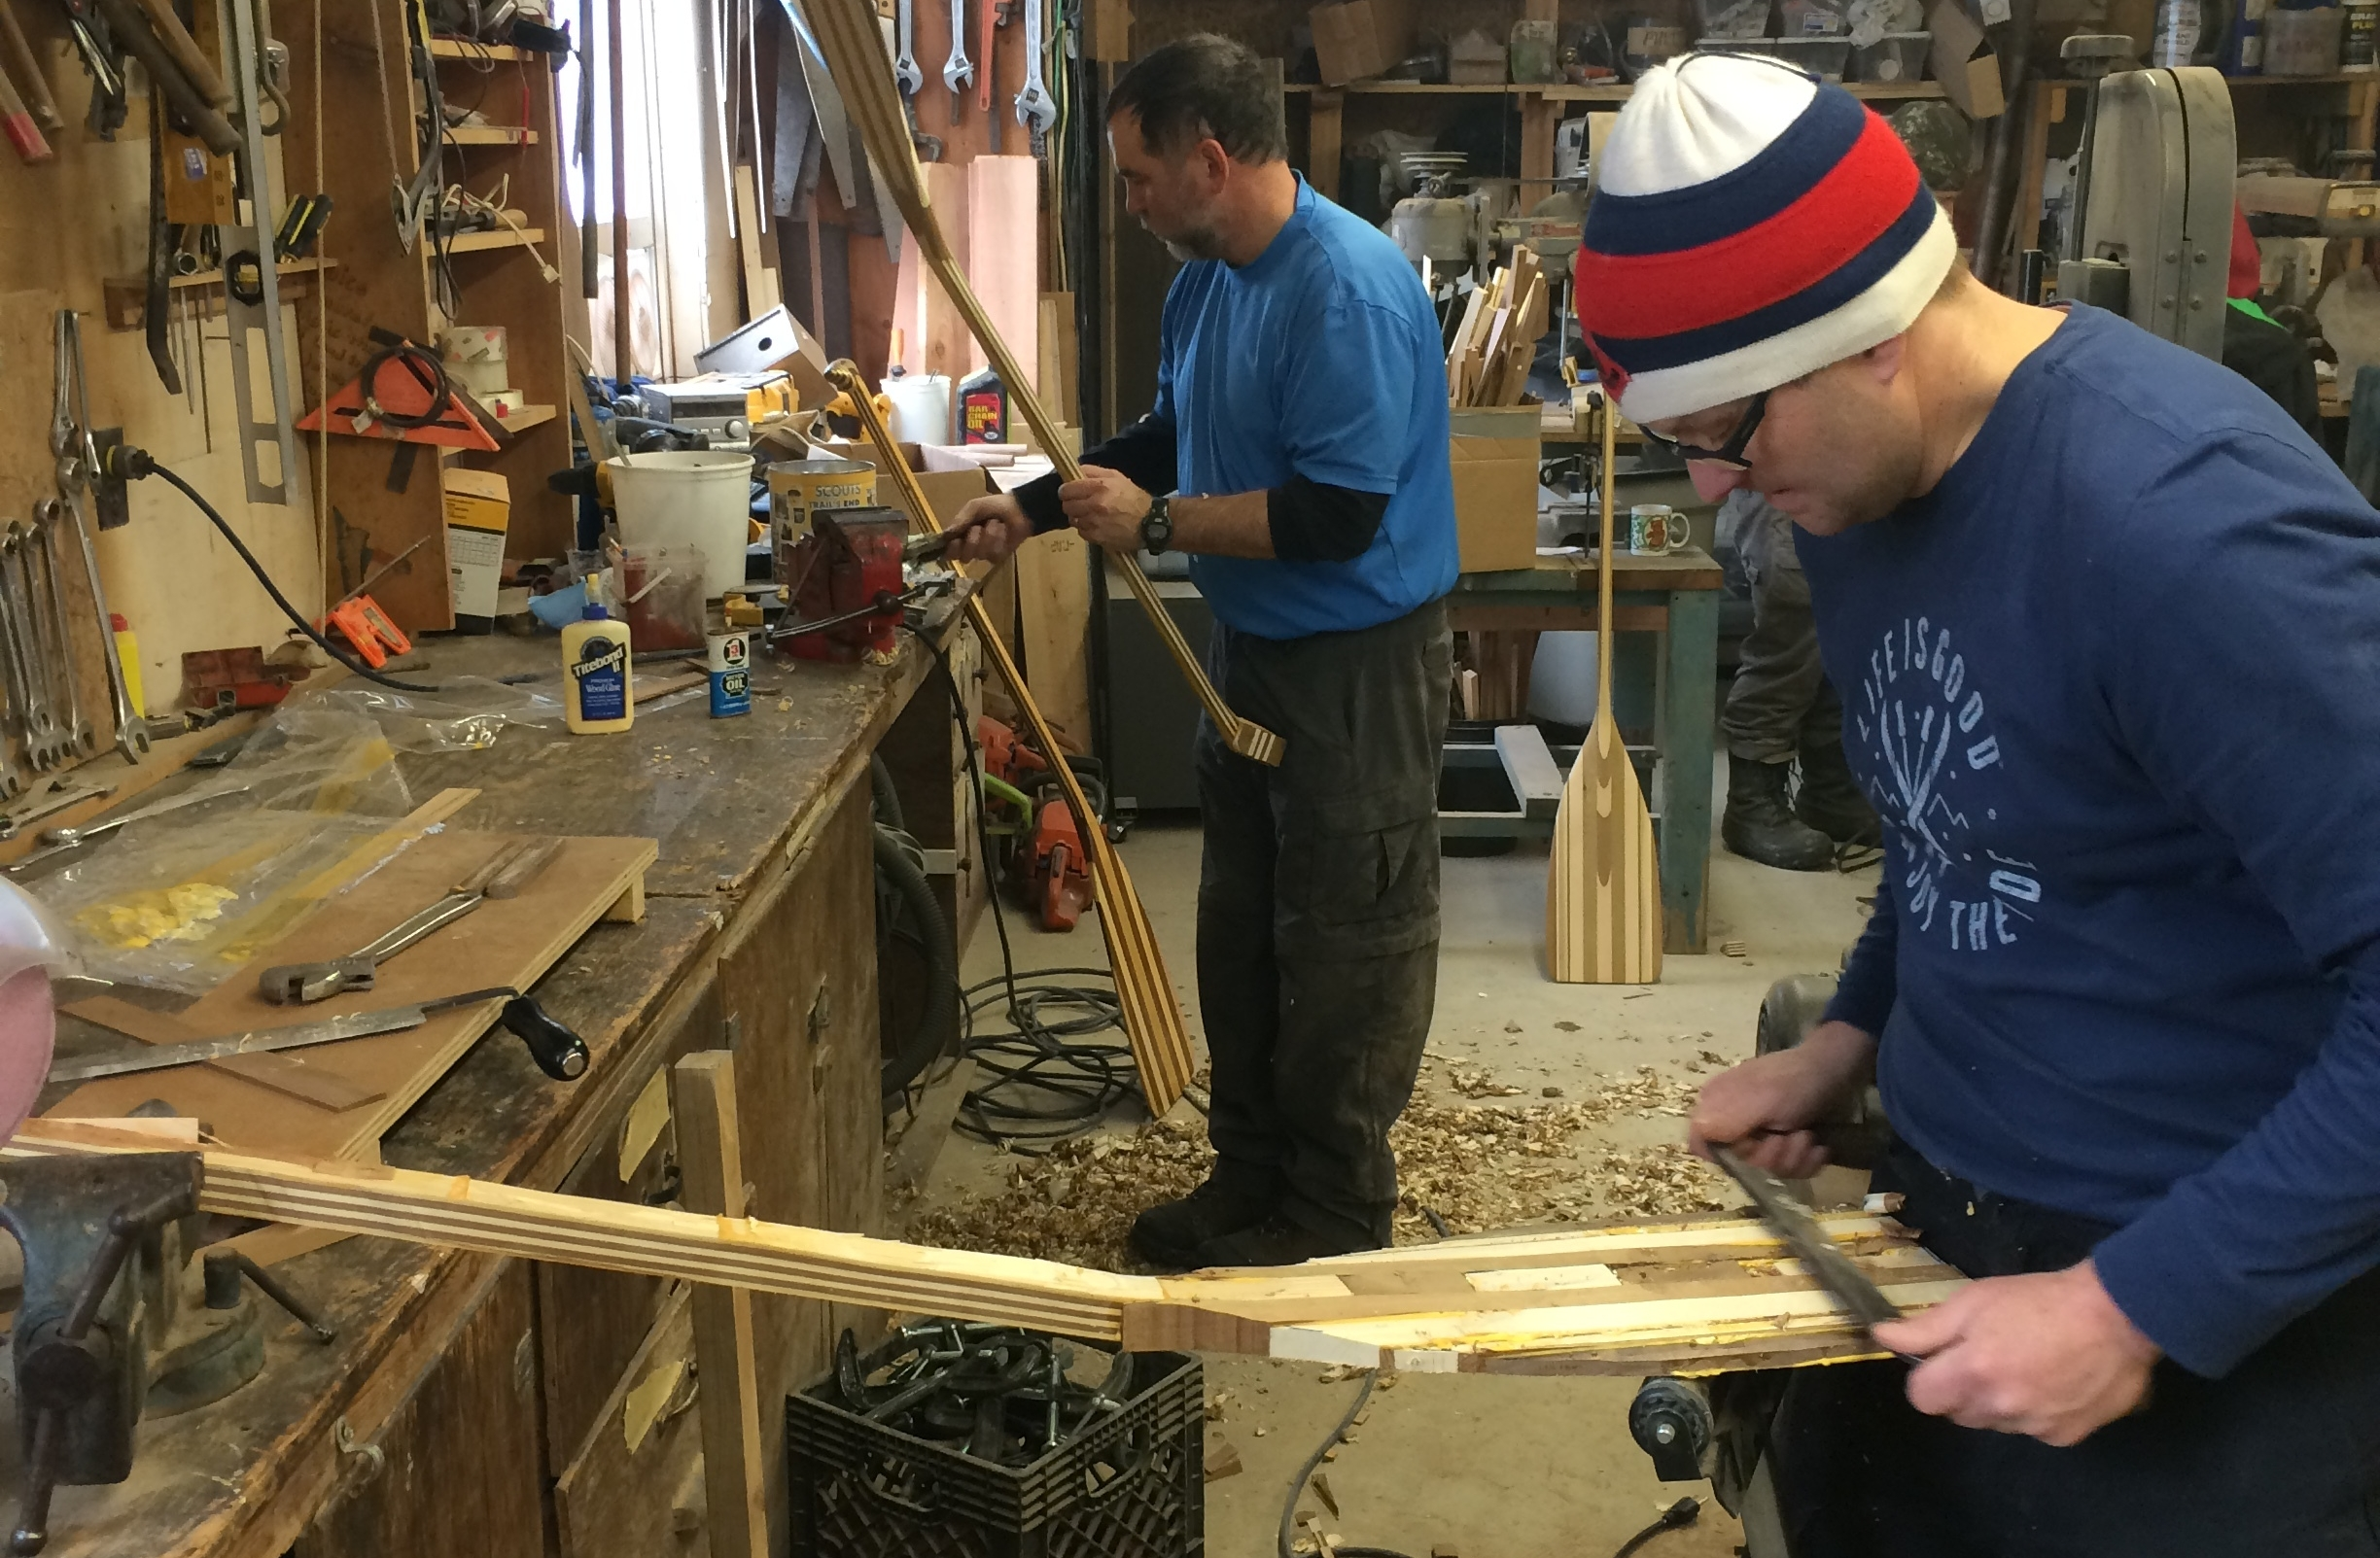 Create! - This weekend long class includes four sessions during which you will complete your own bent shaft canoe or stand up paddle board paddle. You will craft your own paddle, from gluing the wood blanks to a finished work of art.